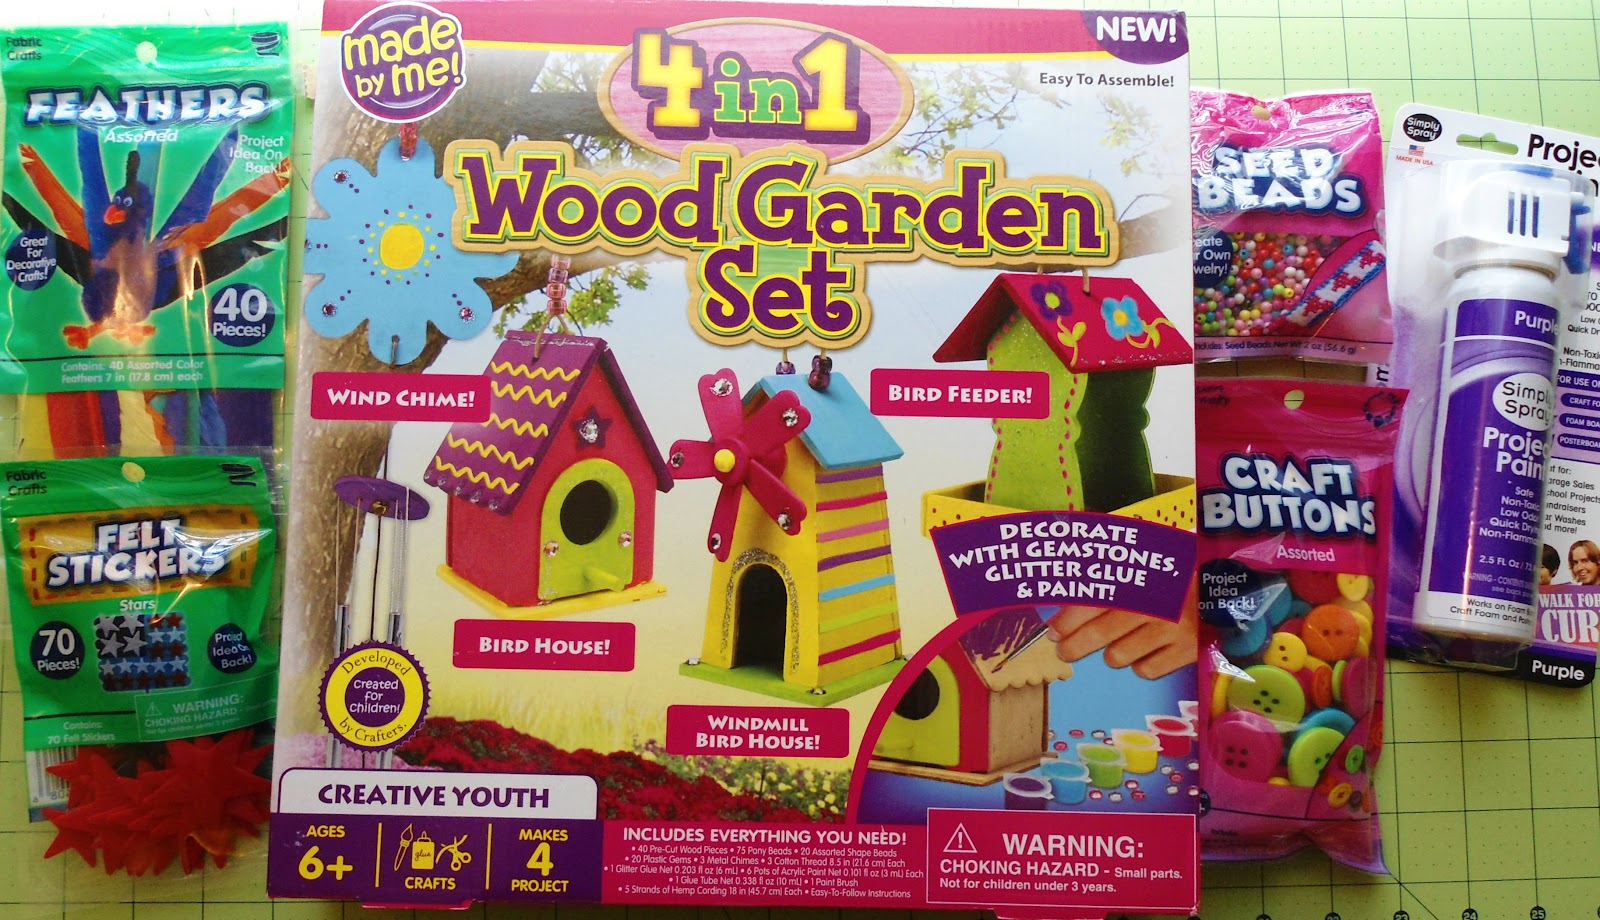 Kids wood craft kits -  Planned For The Summer With These Goodies Which I Ll Share With You In The Future Of Course But We Decided To Begin With Painting And Building The